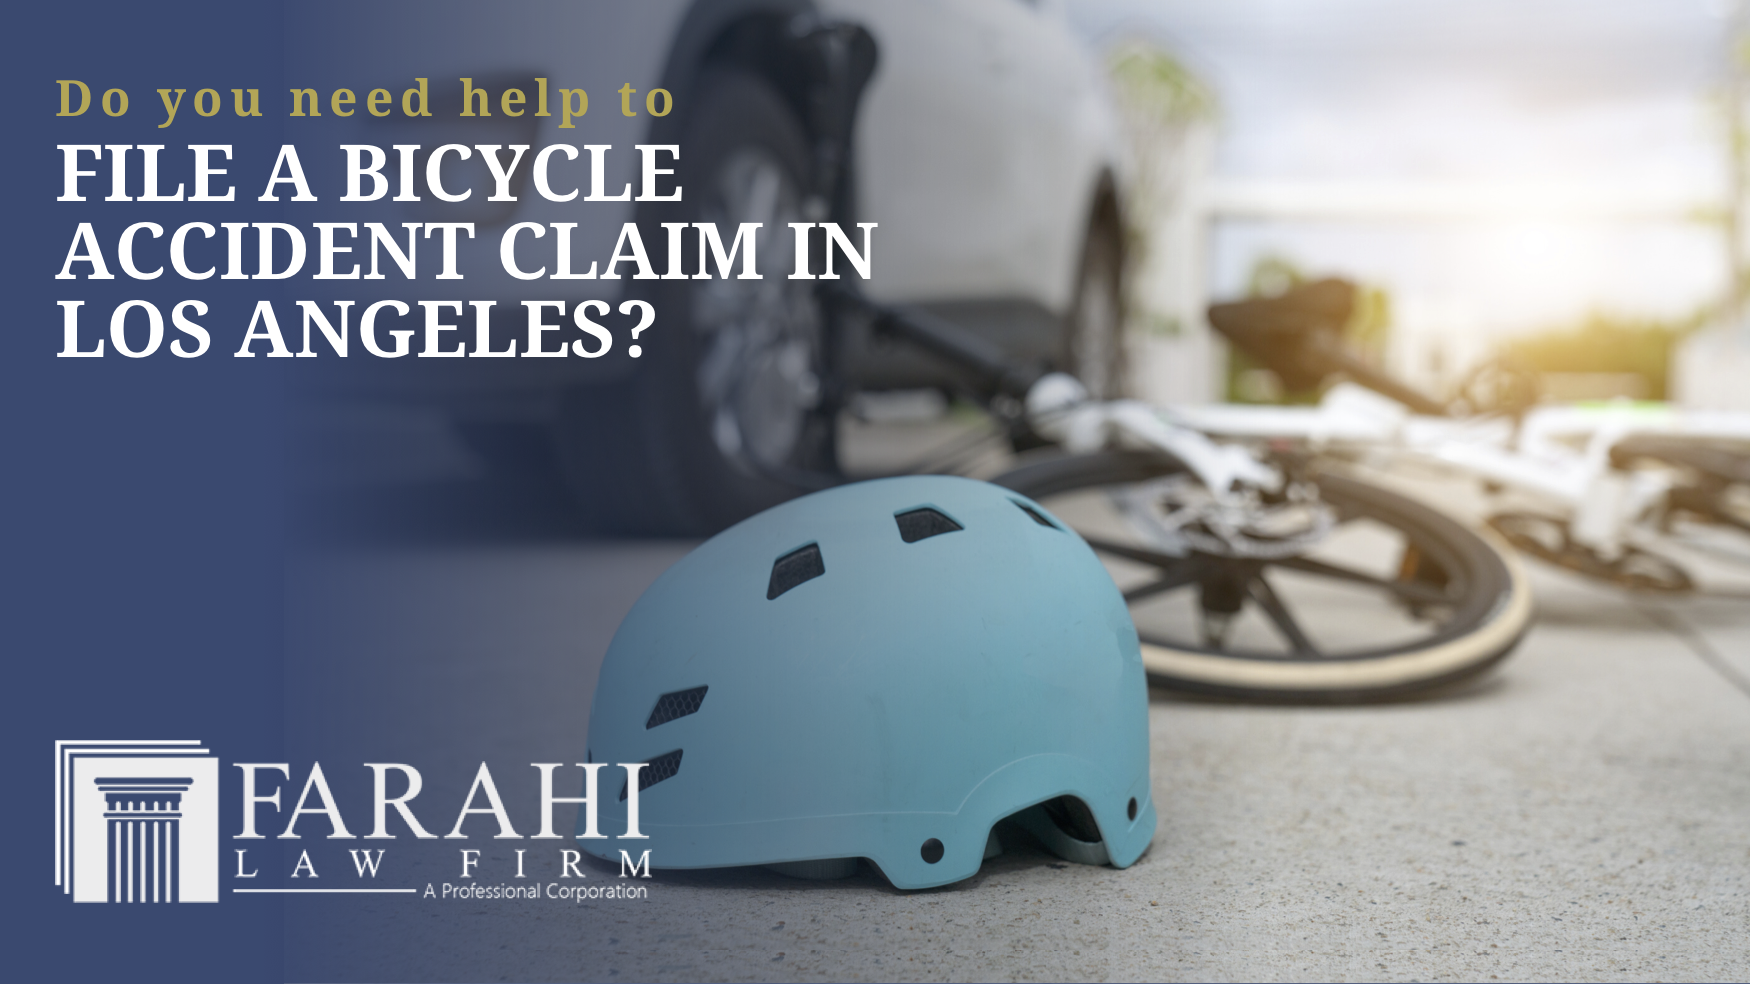 File a Bicycle Accident Claim in Los Angeles